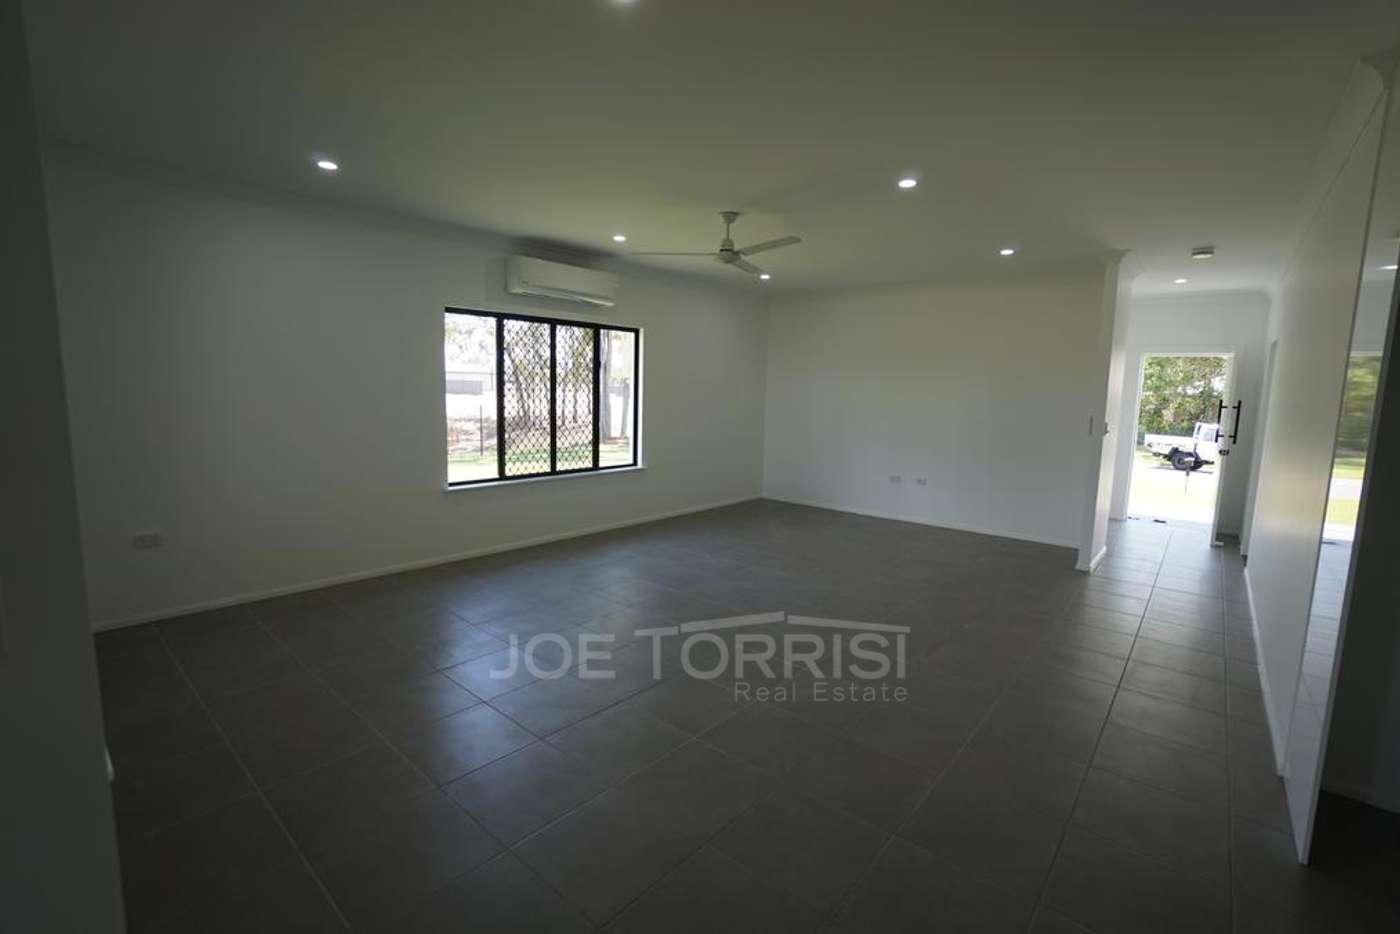 Sixth view of Homely house listing, 2 Yarrabee Close, Mareeba QLD 4880